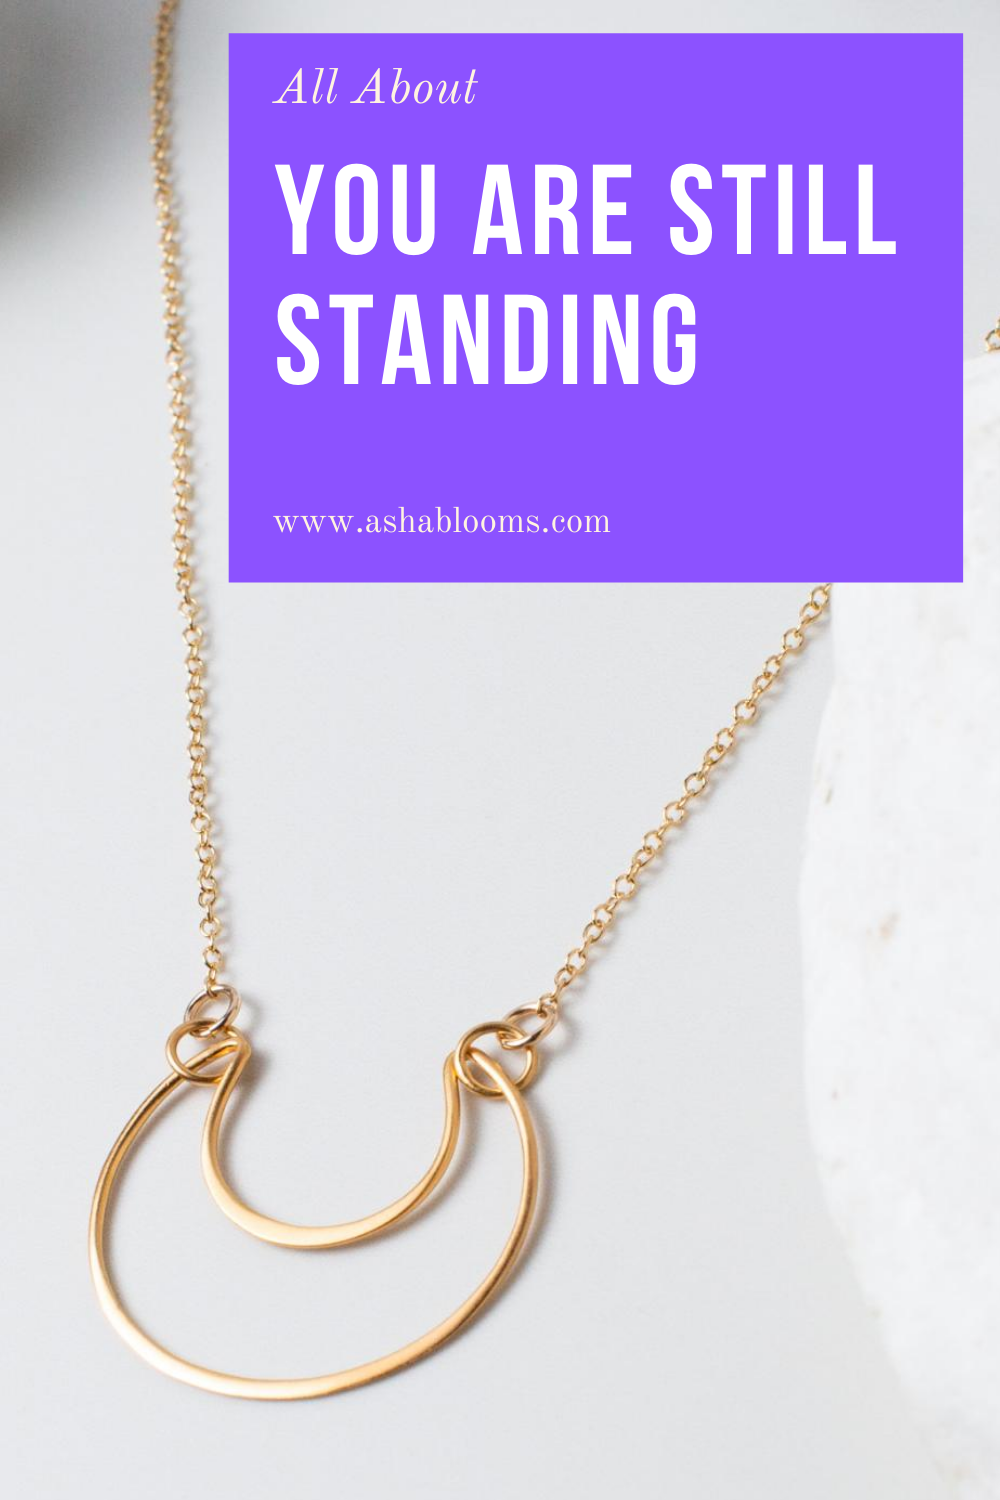 About the 'You Are Still Standing' Necklace